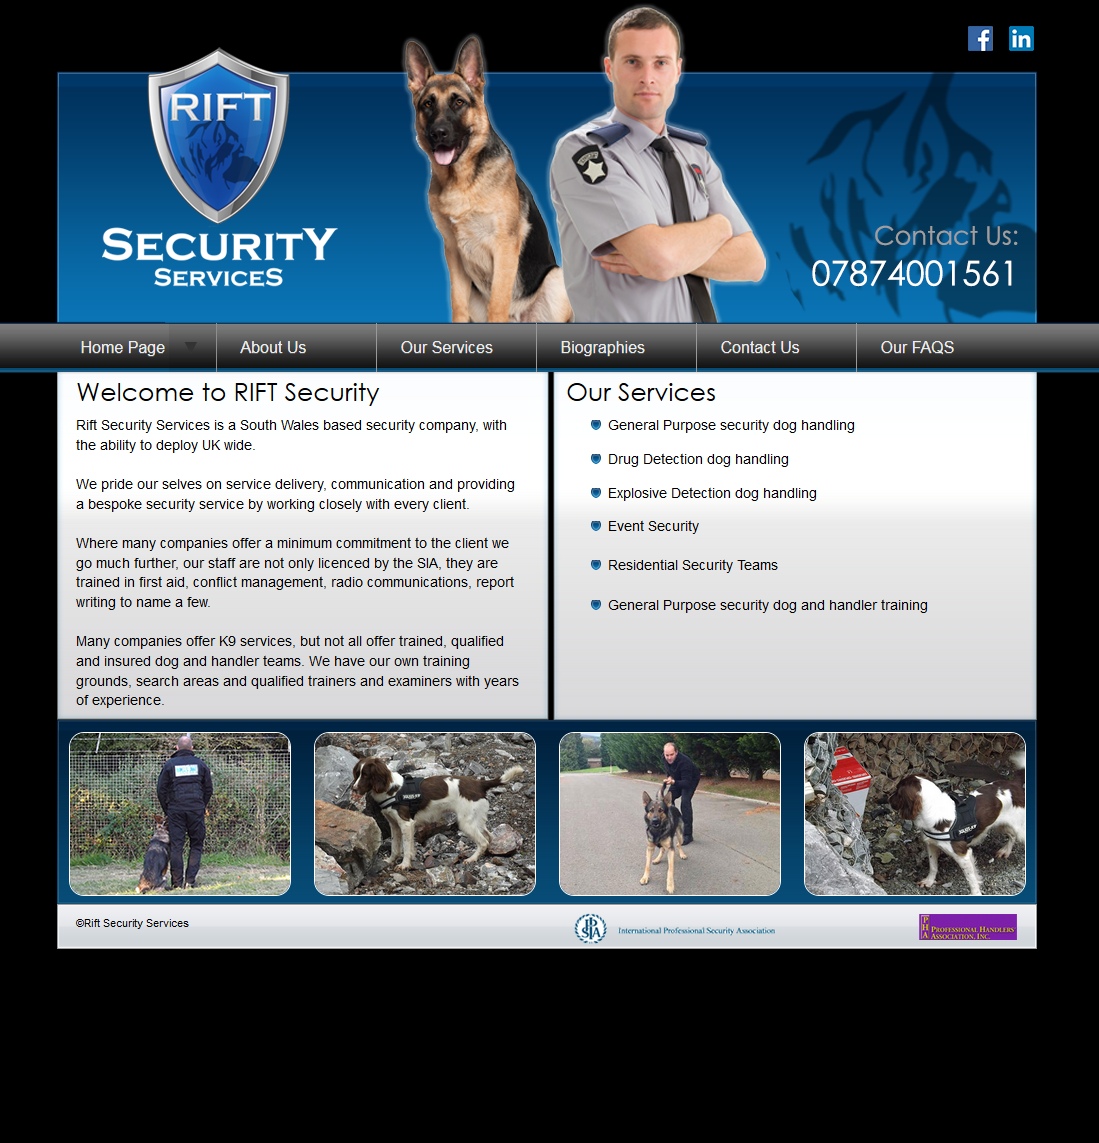 An image from the Rift Security Services website